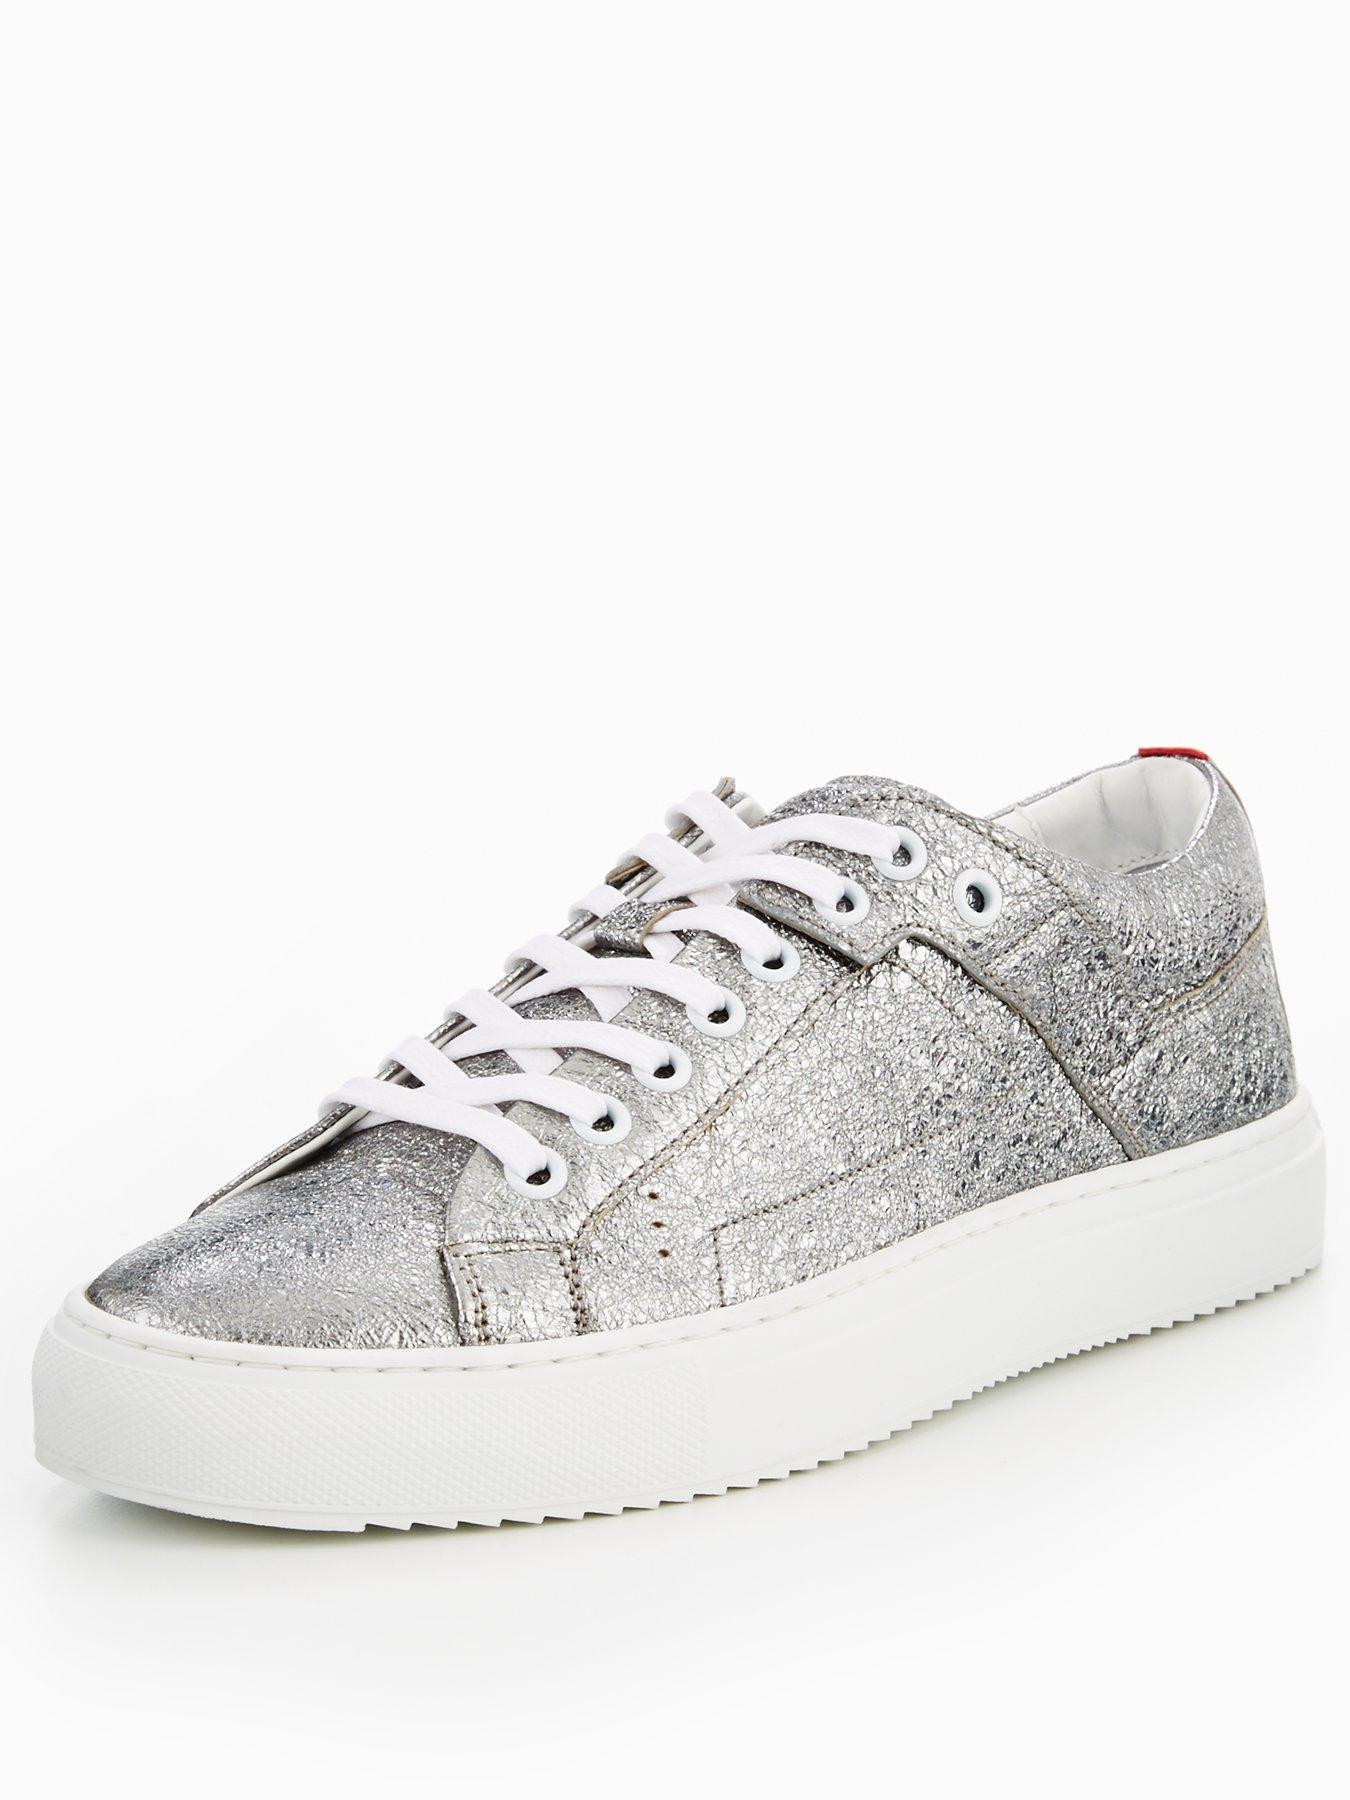 HUGO BOSS Margaret-ft flatform plimsoll, Women